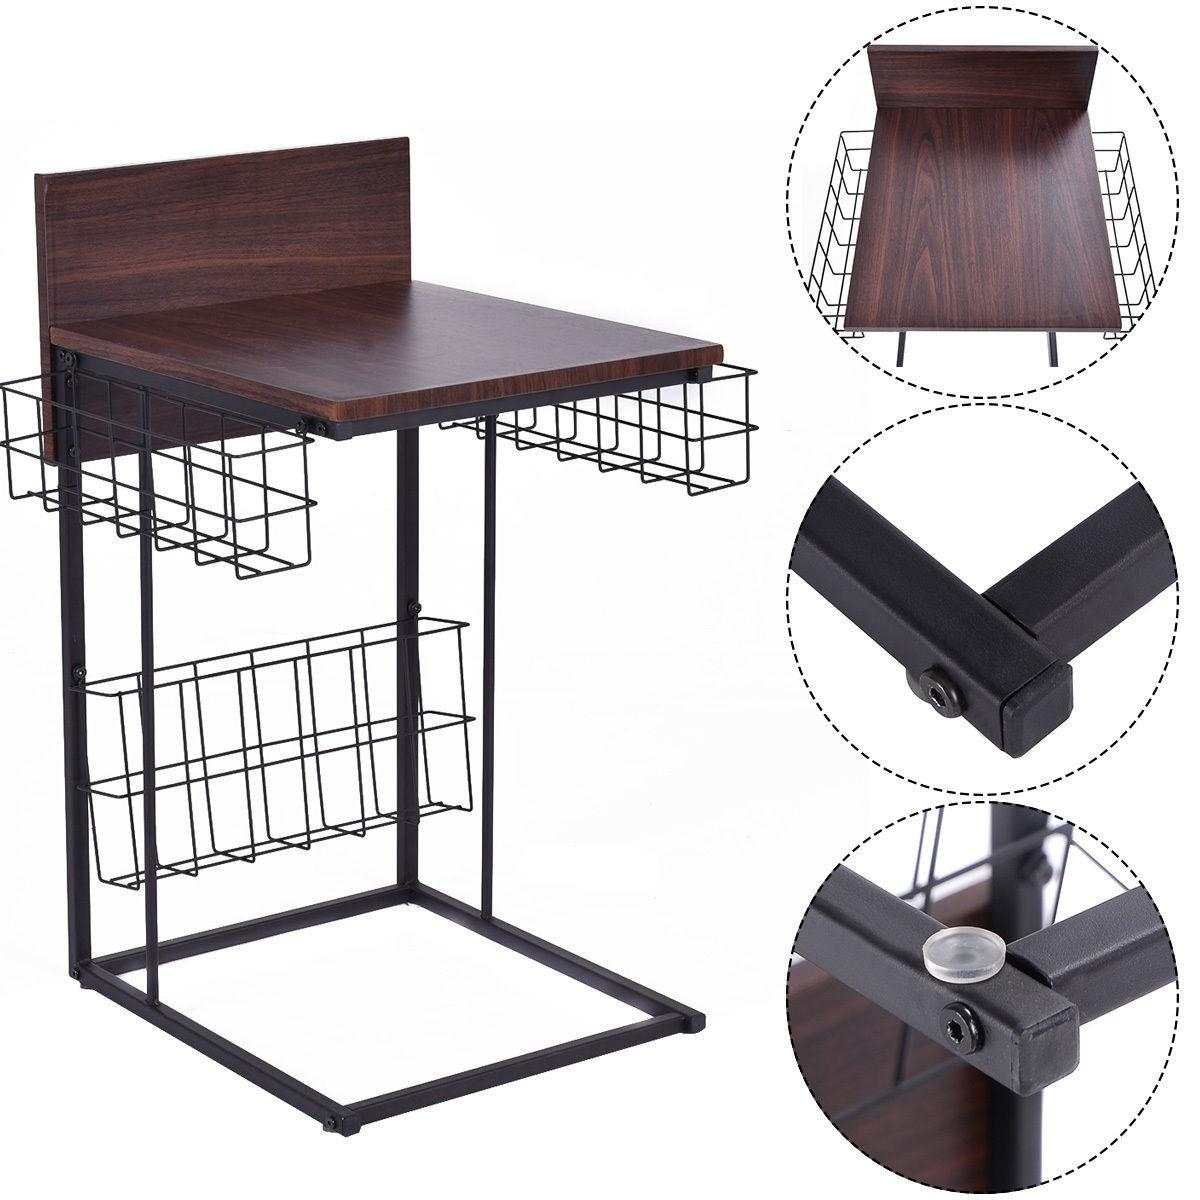 couch sofa armrest wrap tray table with side storage slot sm megamall bed 25 collection of tables storages ideas